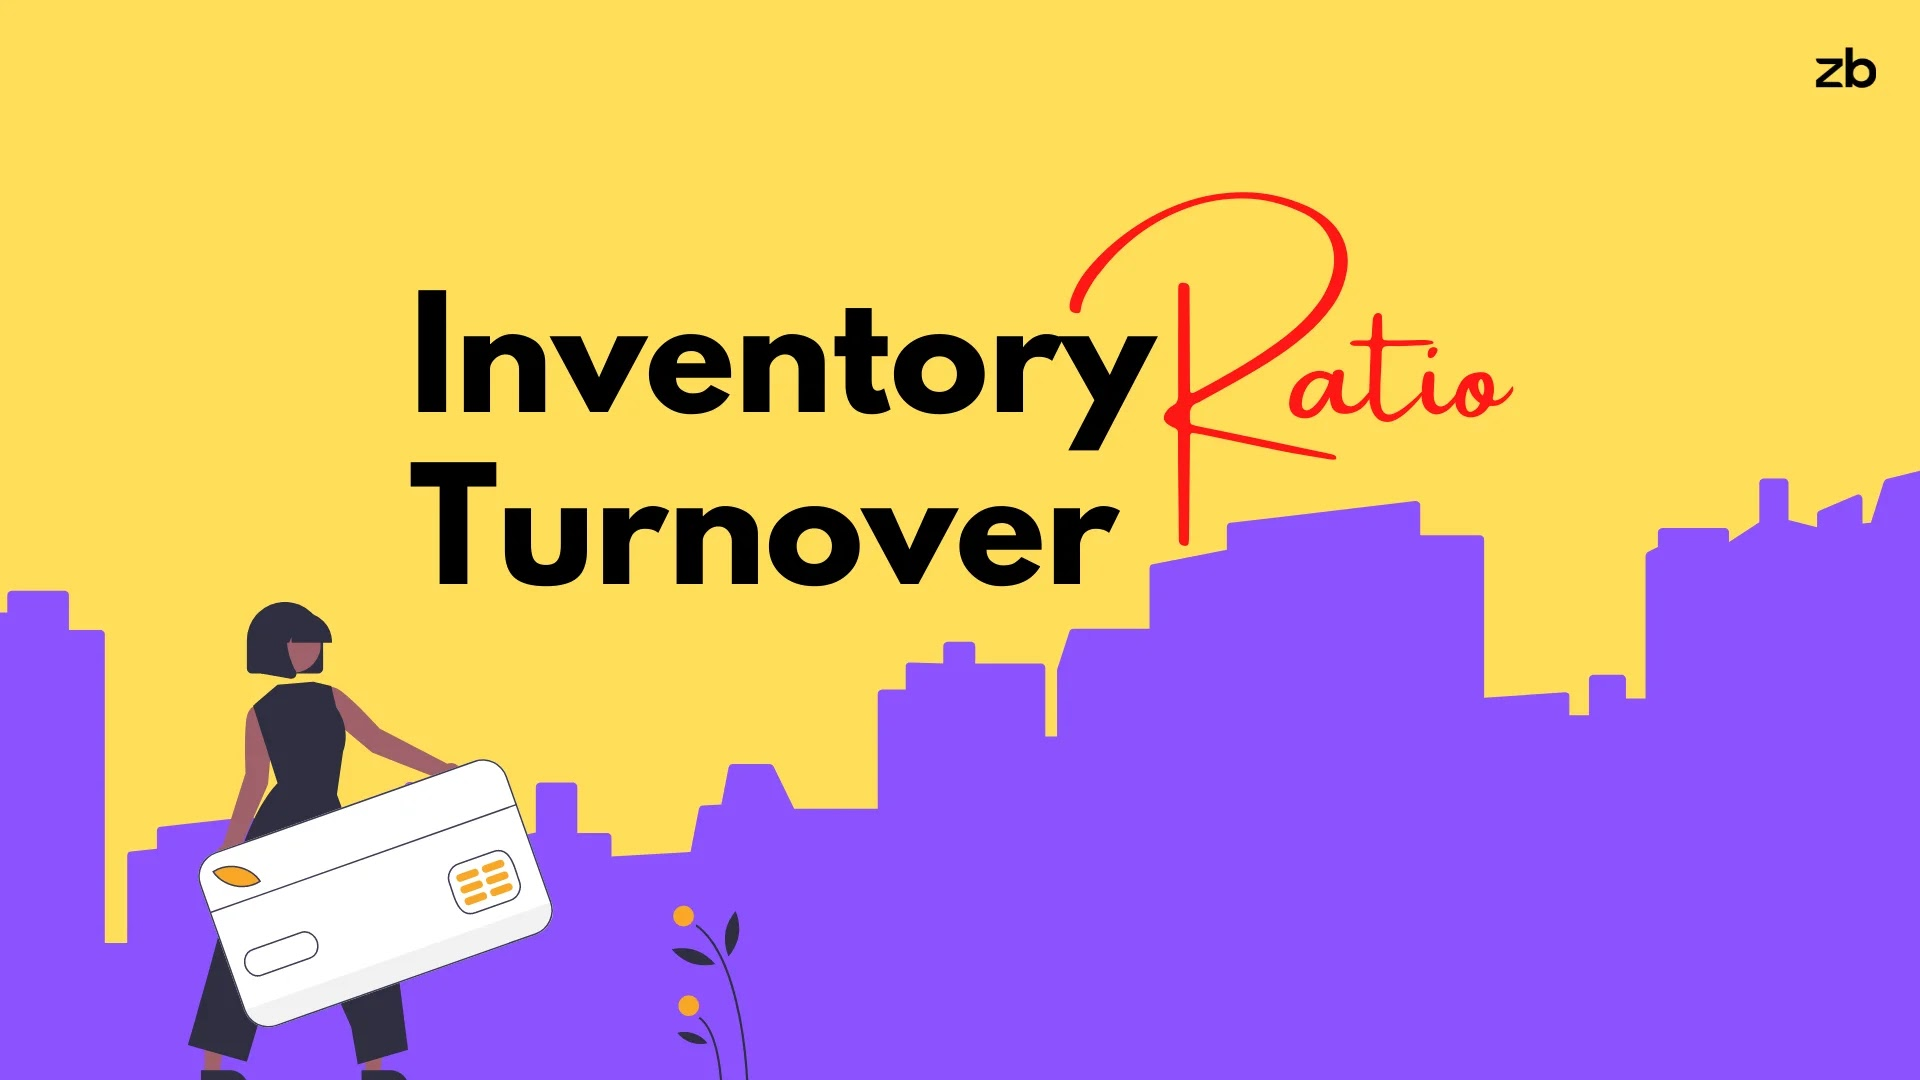 inventory turnover ratio calculation and explanation with formula by zerobizz